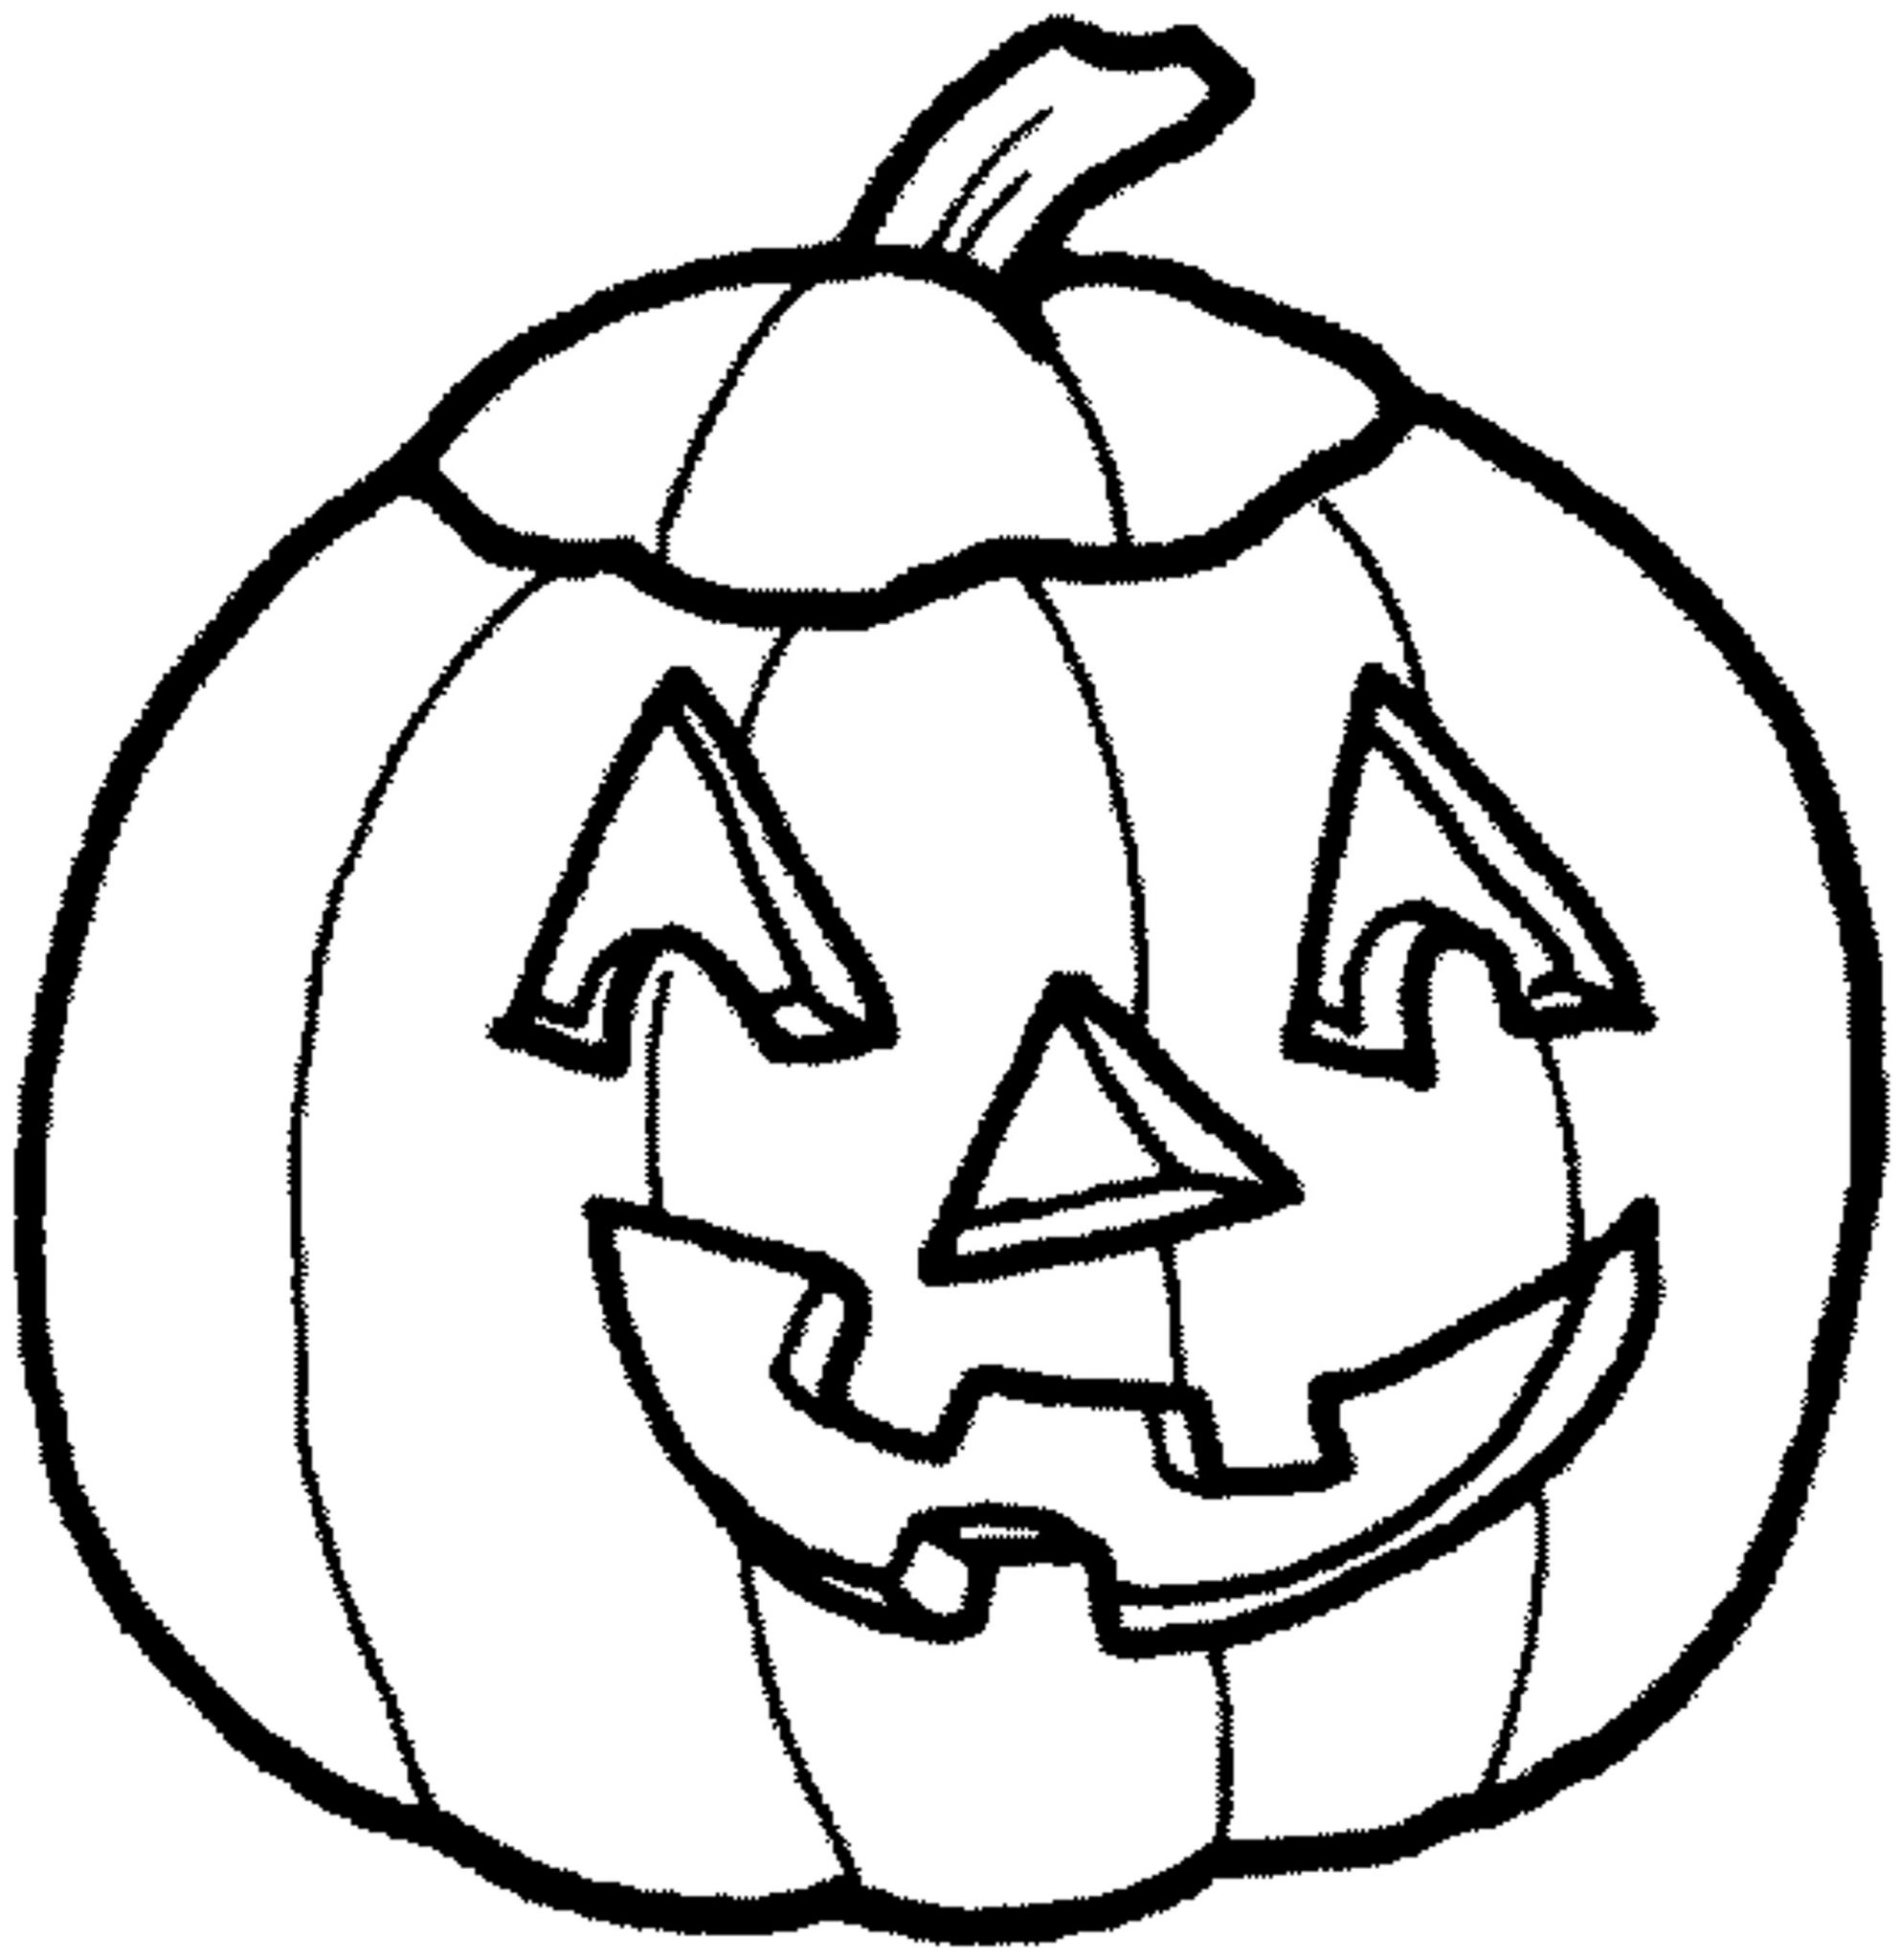 color a pumpkin pumpkin line drawing at getdrawings free download a color pumpkin